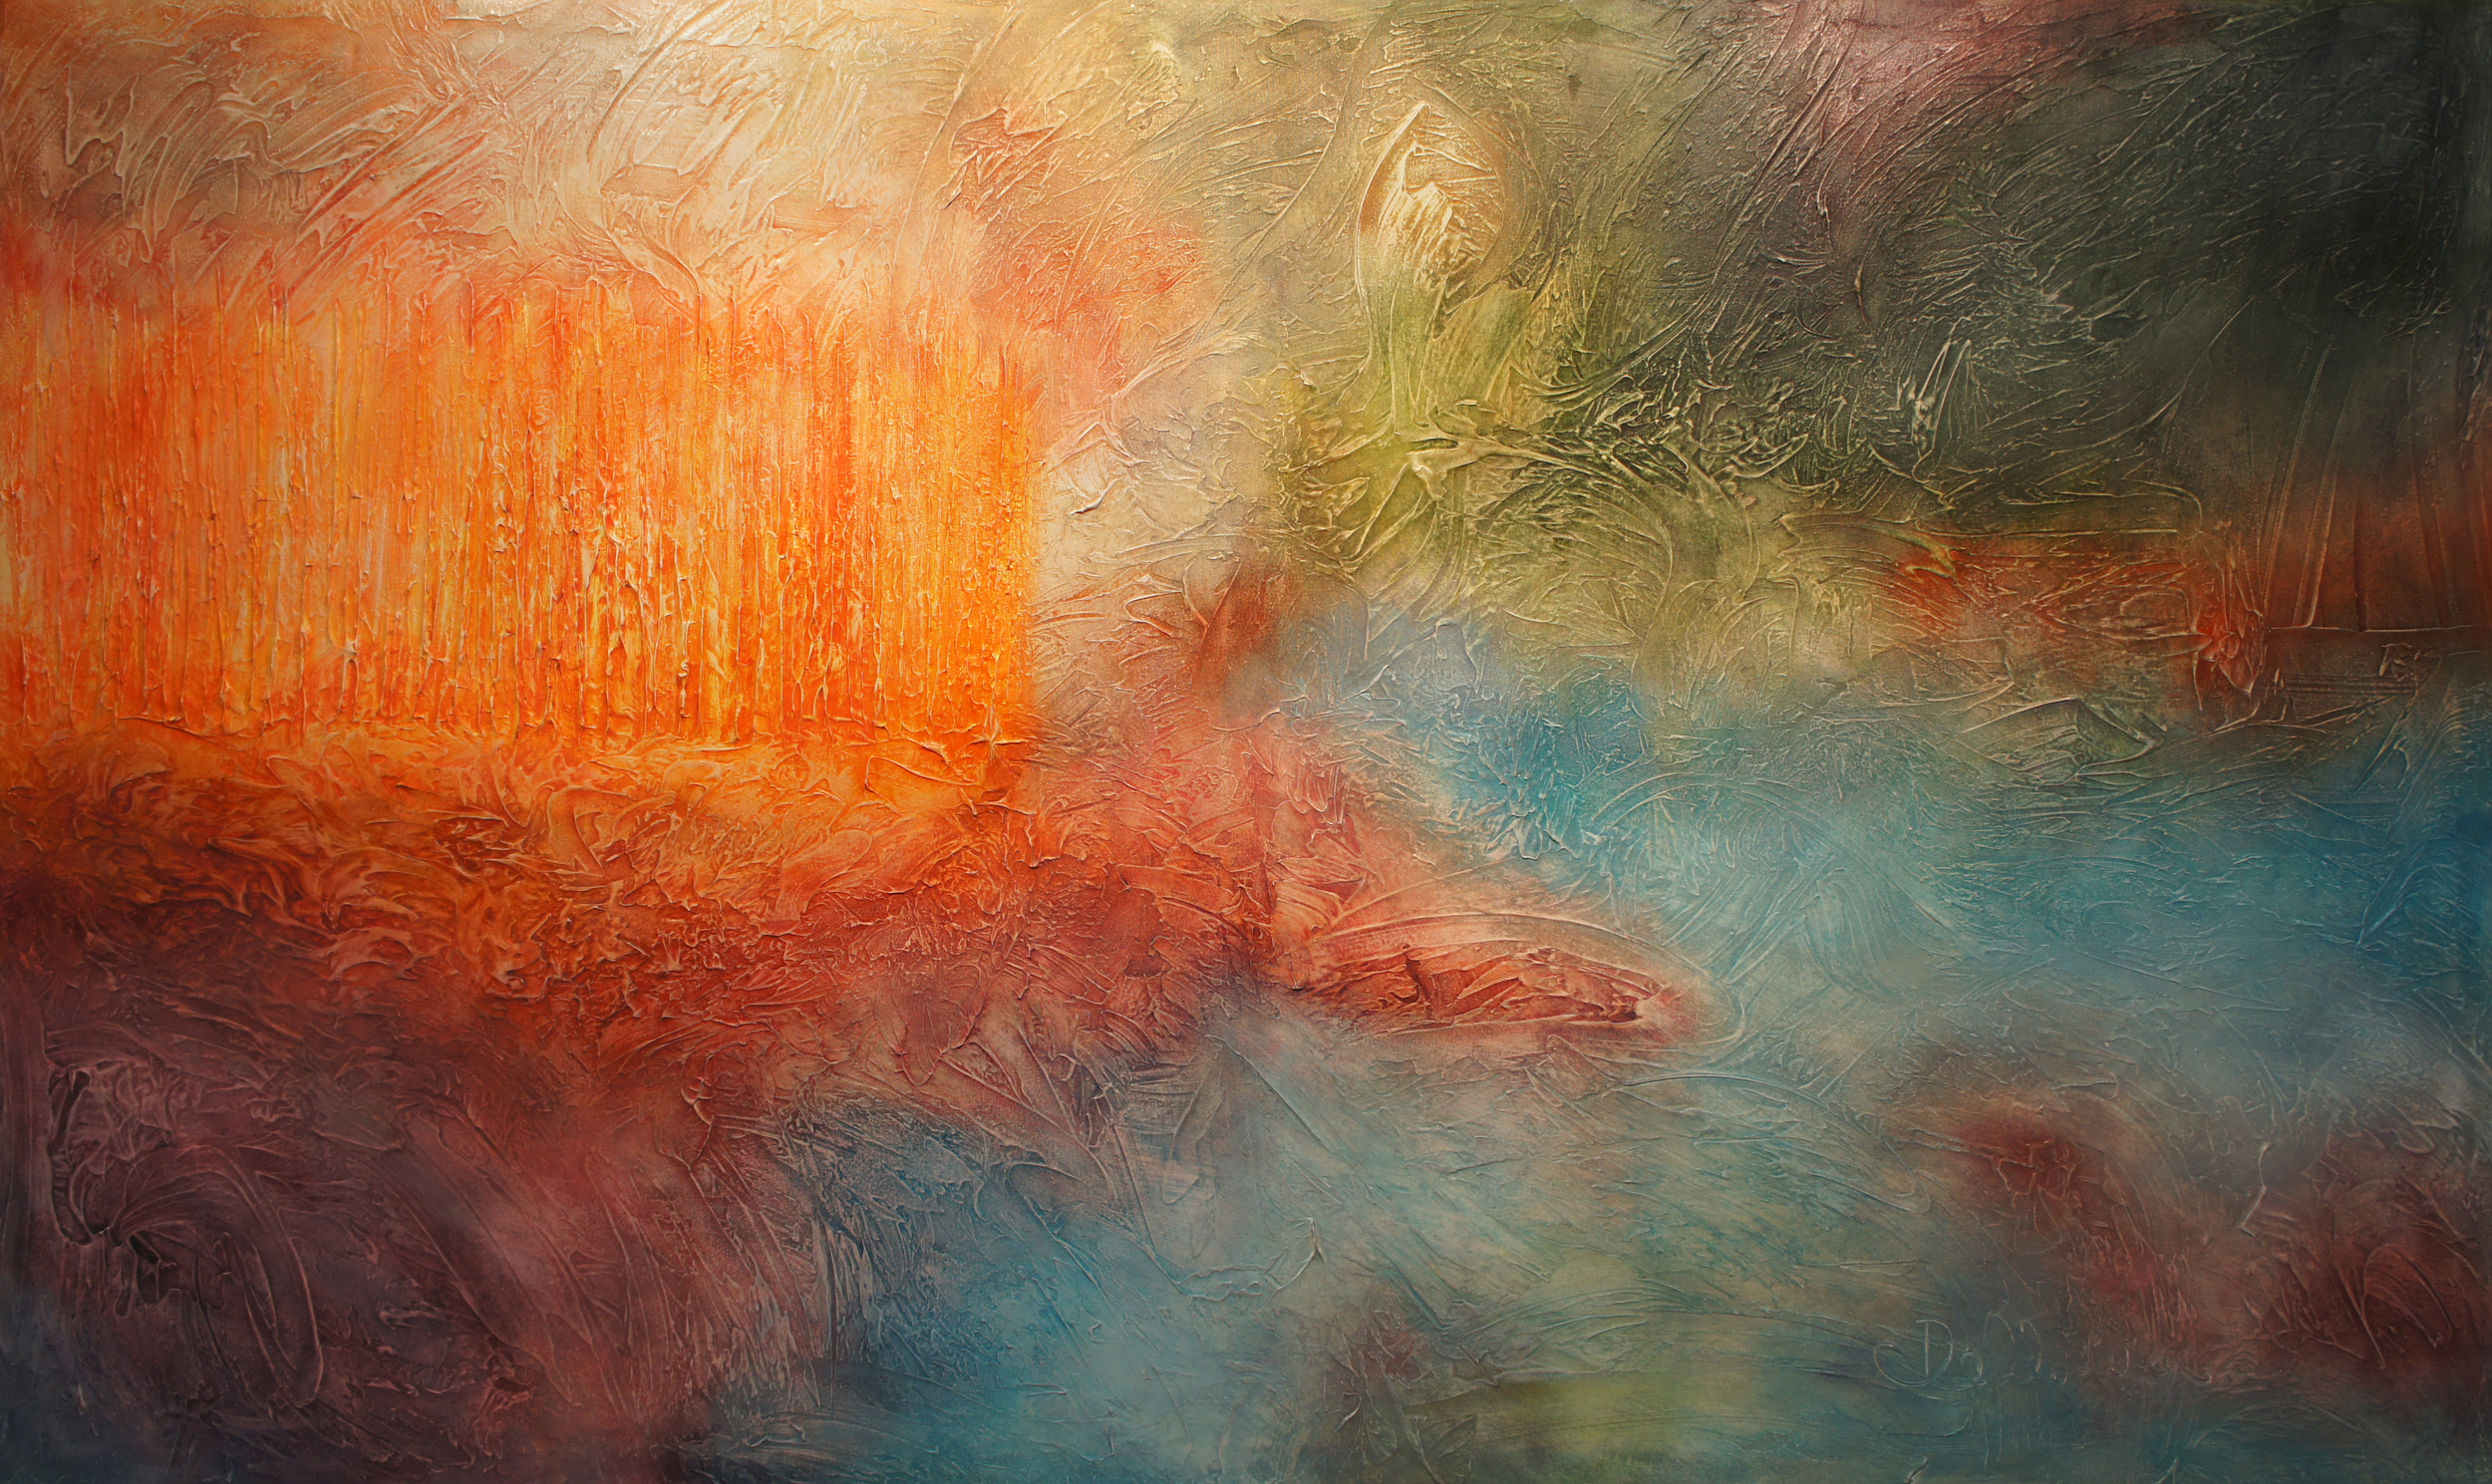 """Island Mist"" - Acrylic on Canvas -36 x 60 Inches - Fernando DeOliveira"